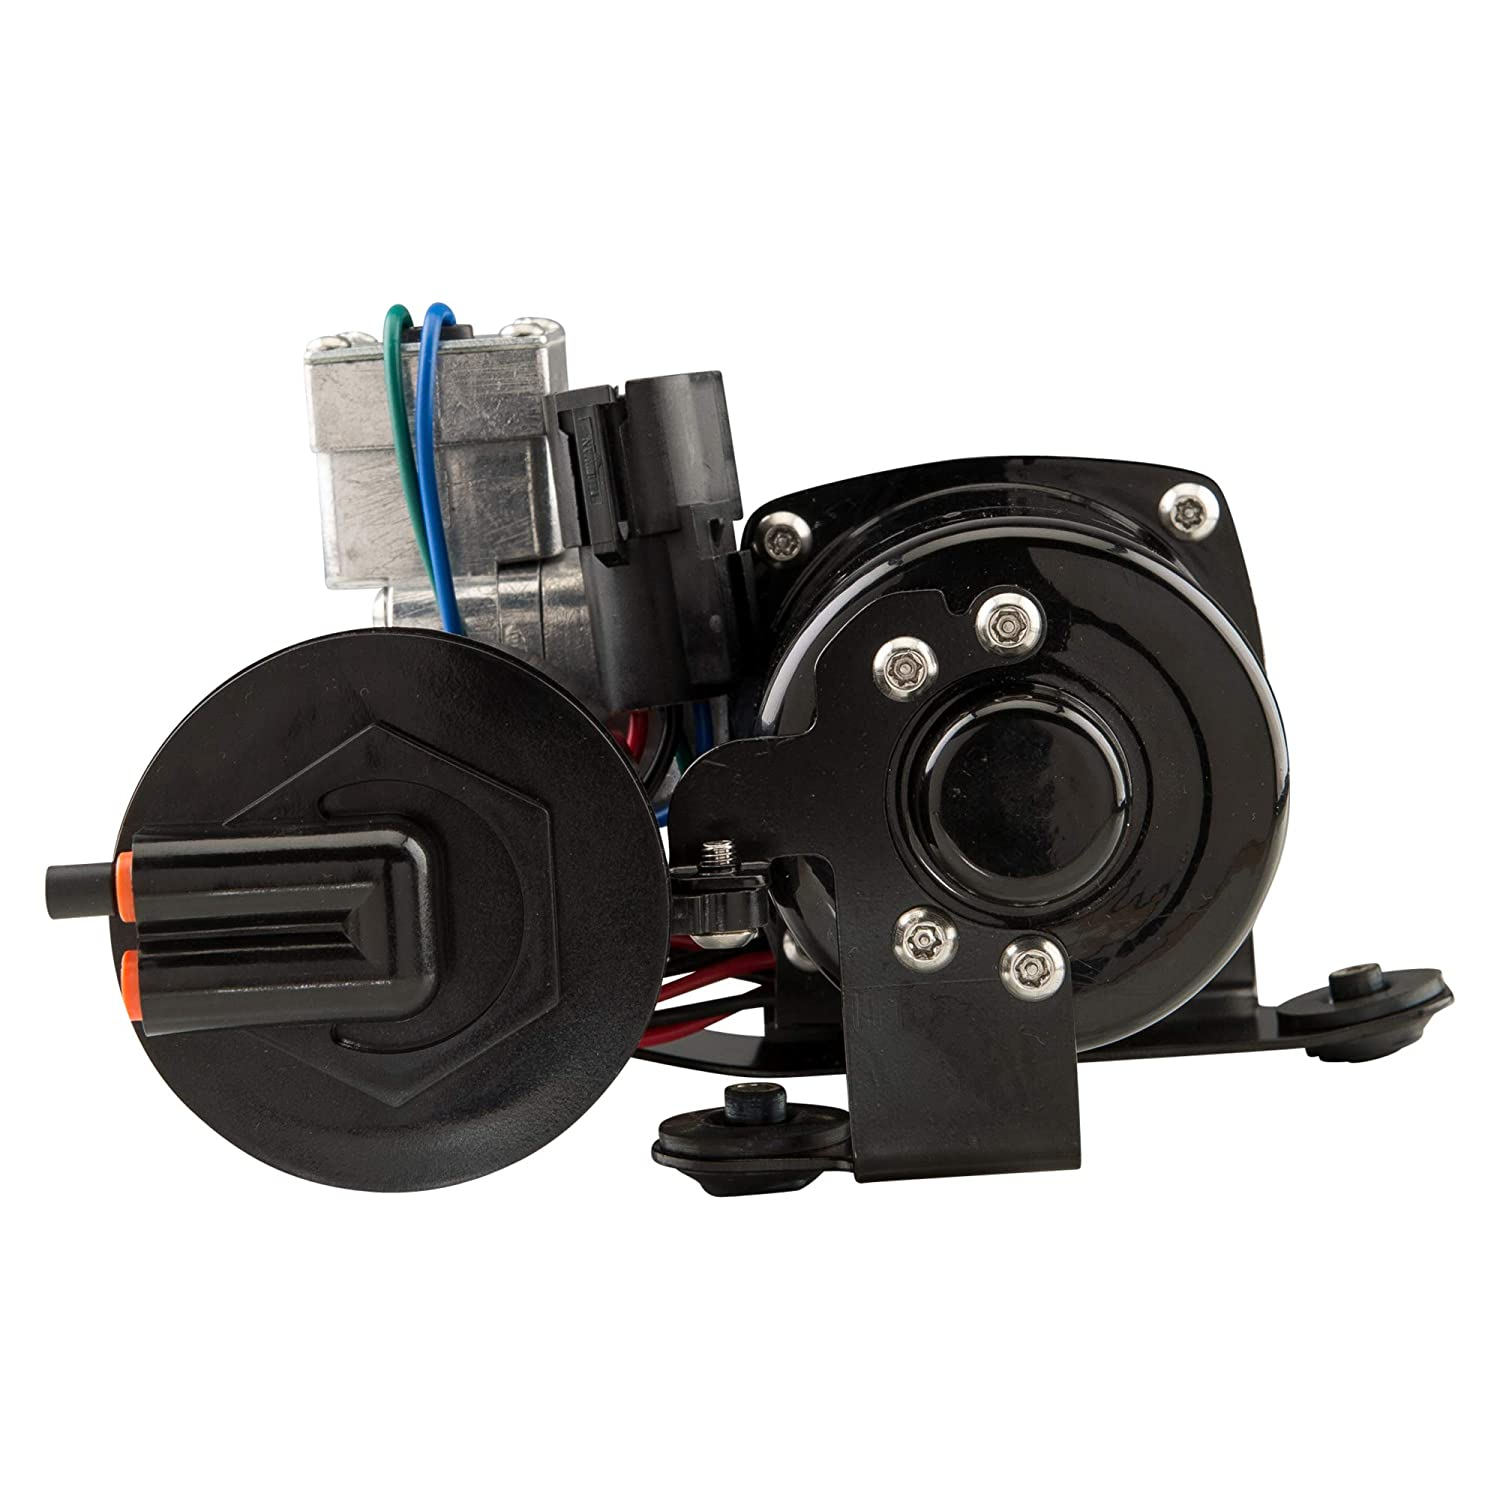 Air Compressor for 2007-2013 Ford Expedition Lincoln Navigator fits P-2937 Parts Galaxy